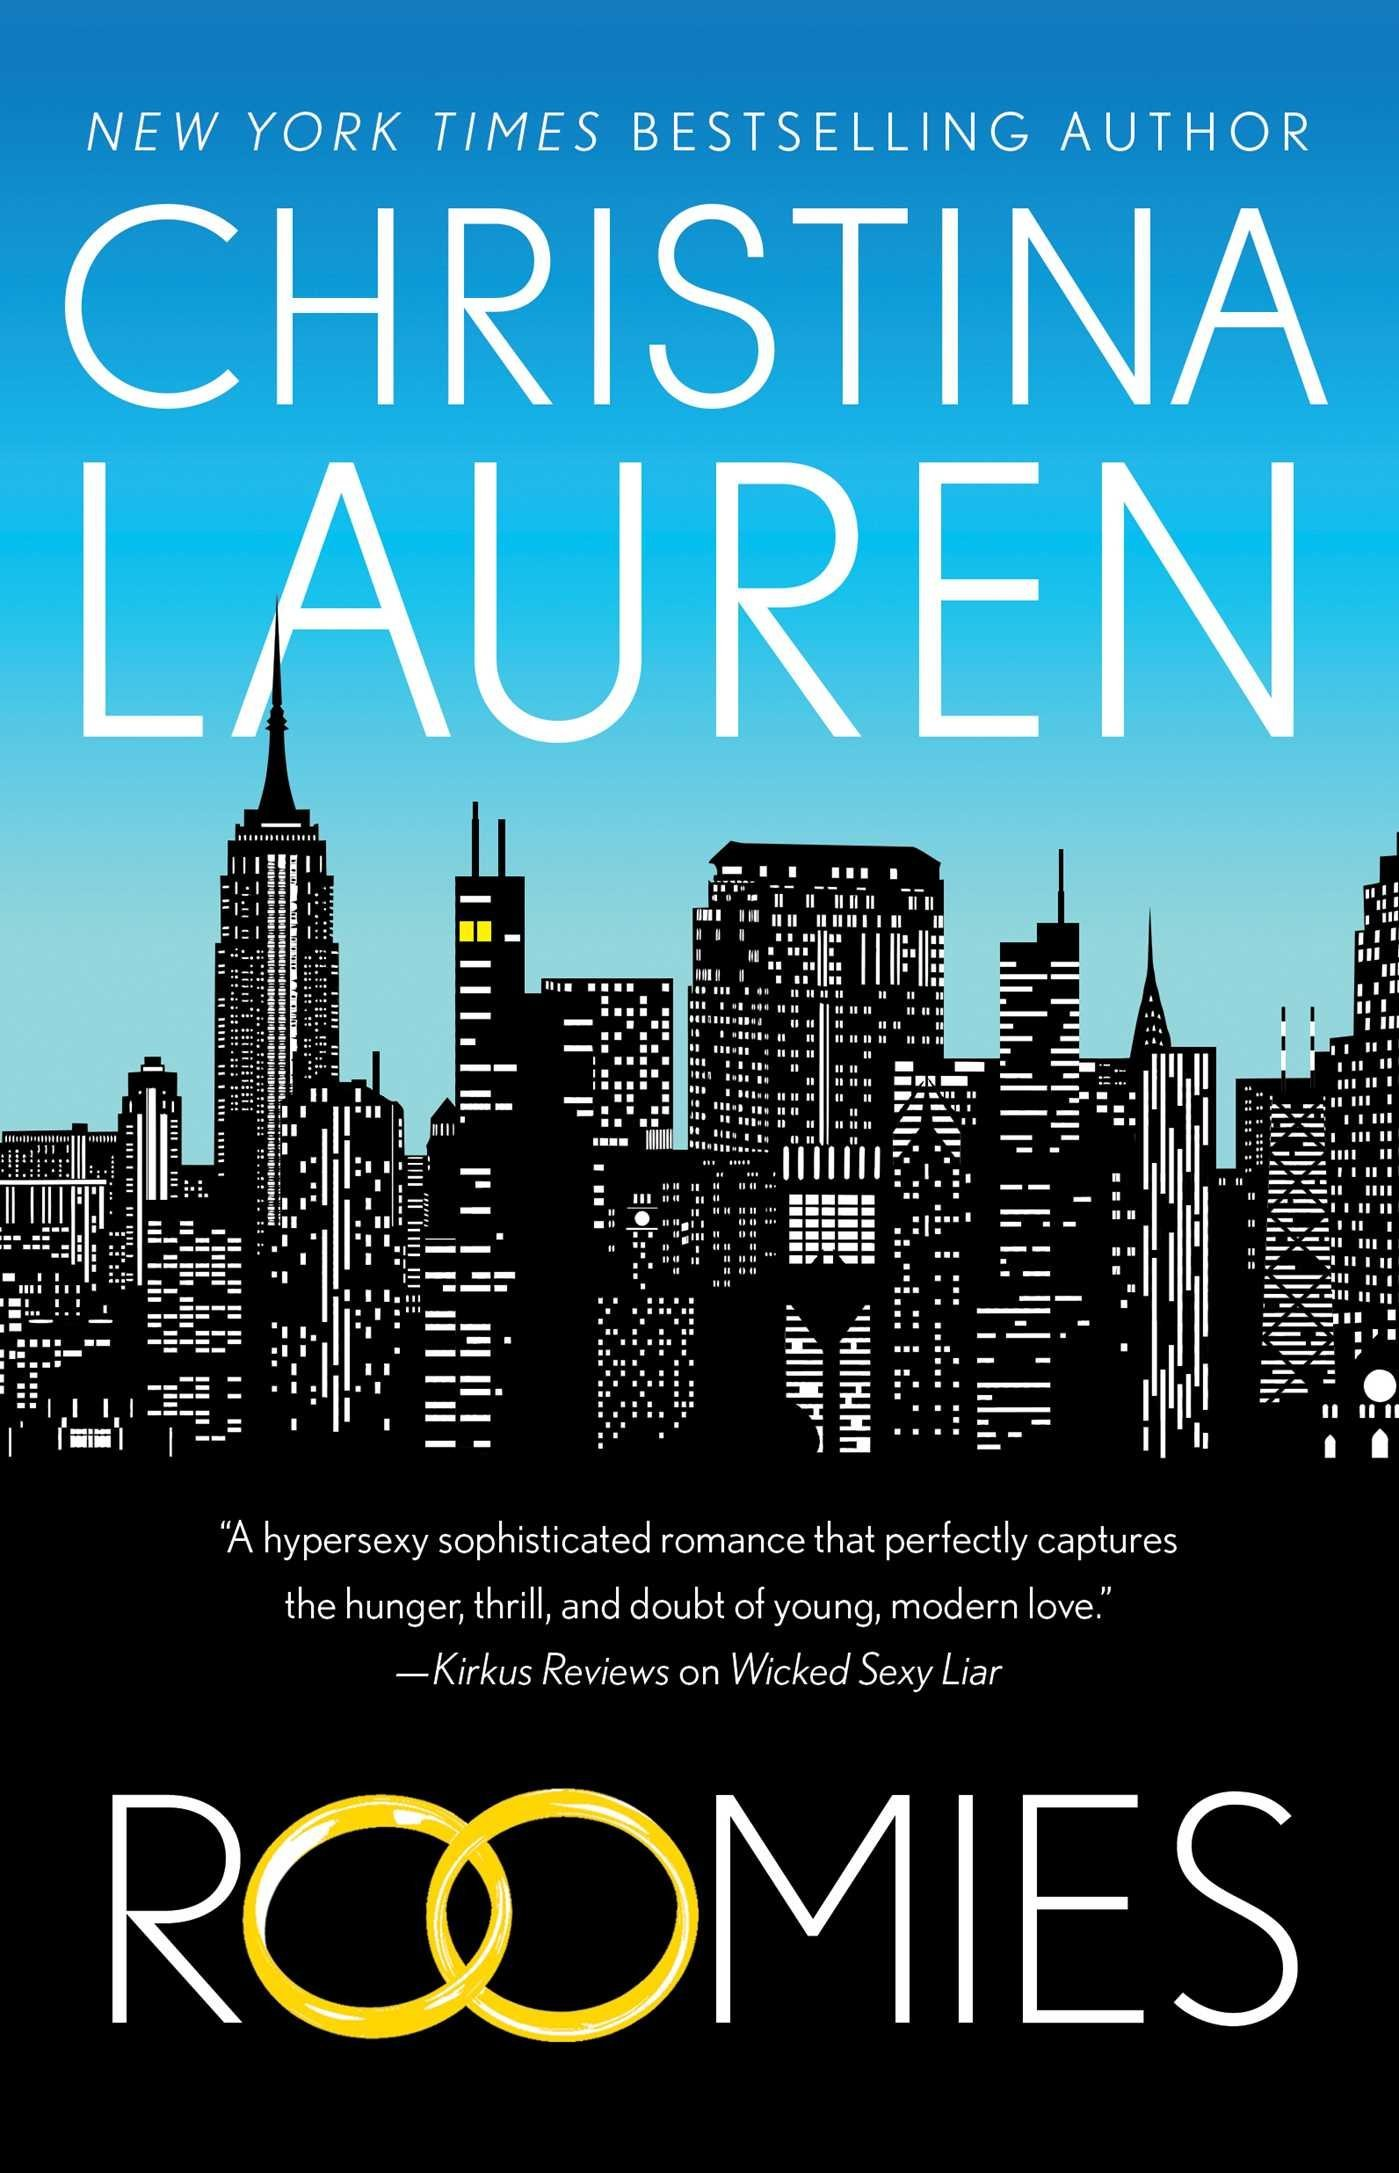 BWW Review: Broadway-inspired ROOMIES by Best-Selling Author Duo Christina Lauren now available!